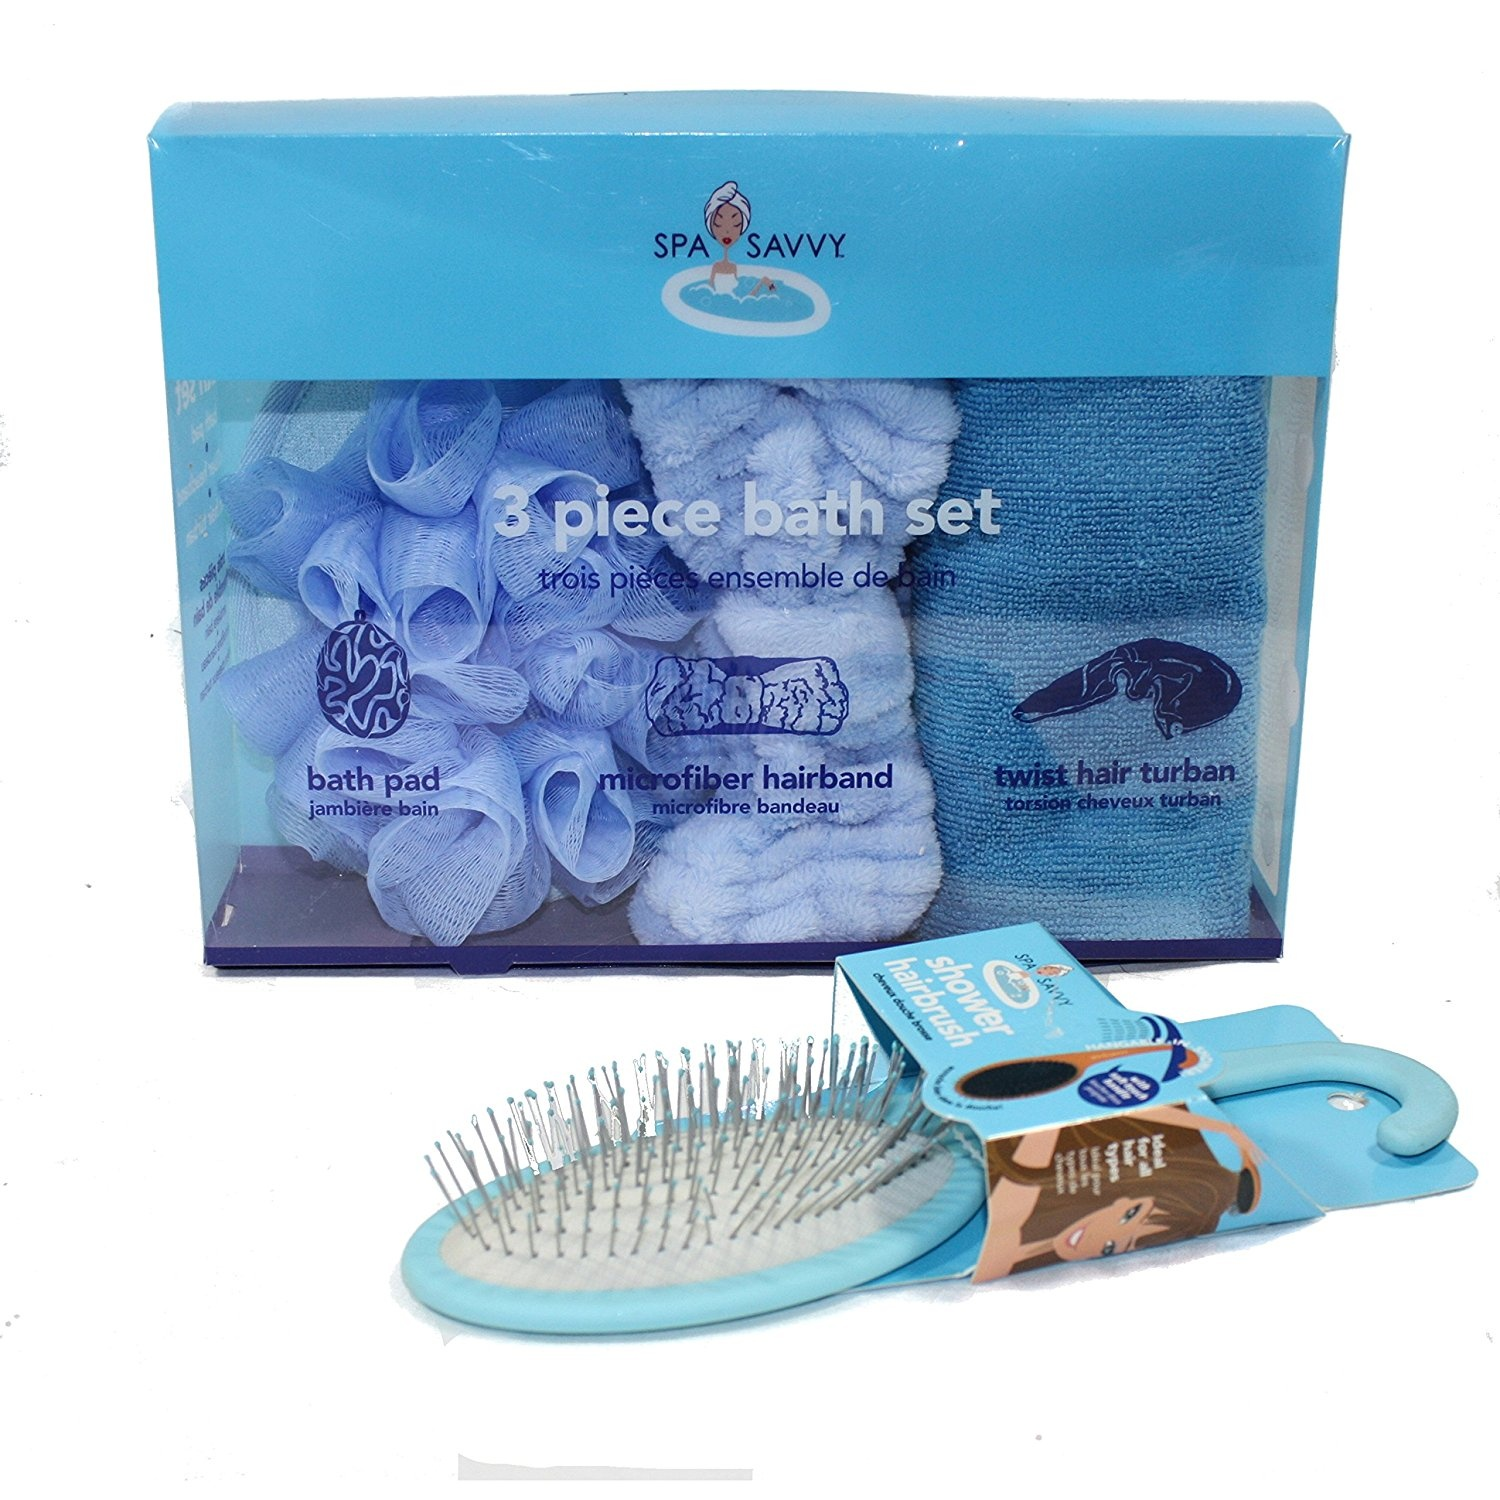 Hair Spa Products Beauty: Buy Online from Fishpond.co.nz